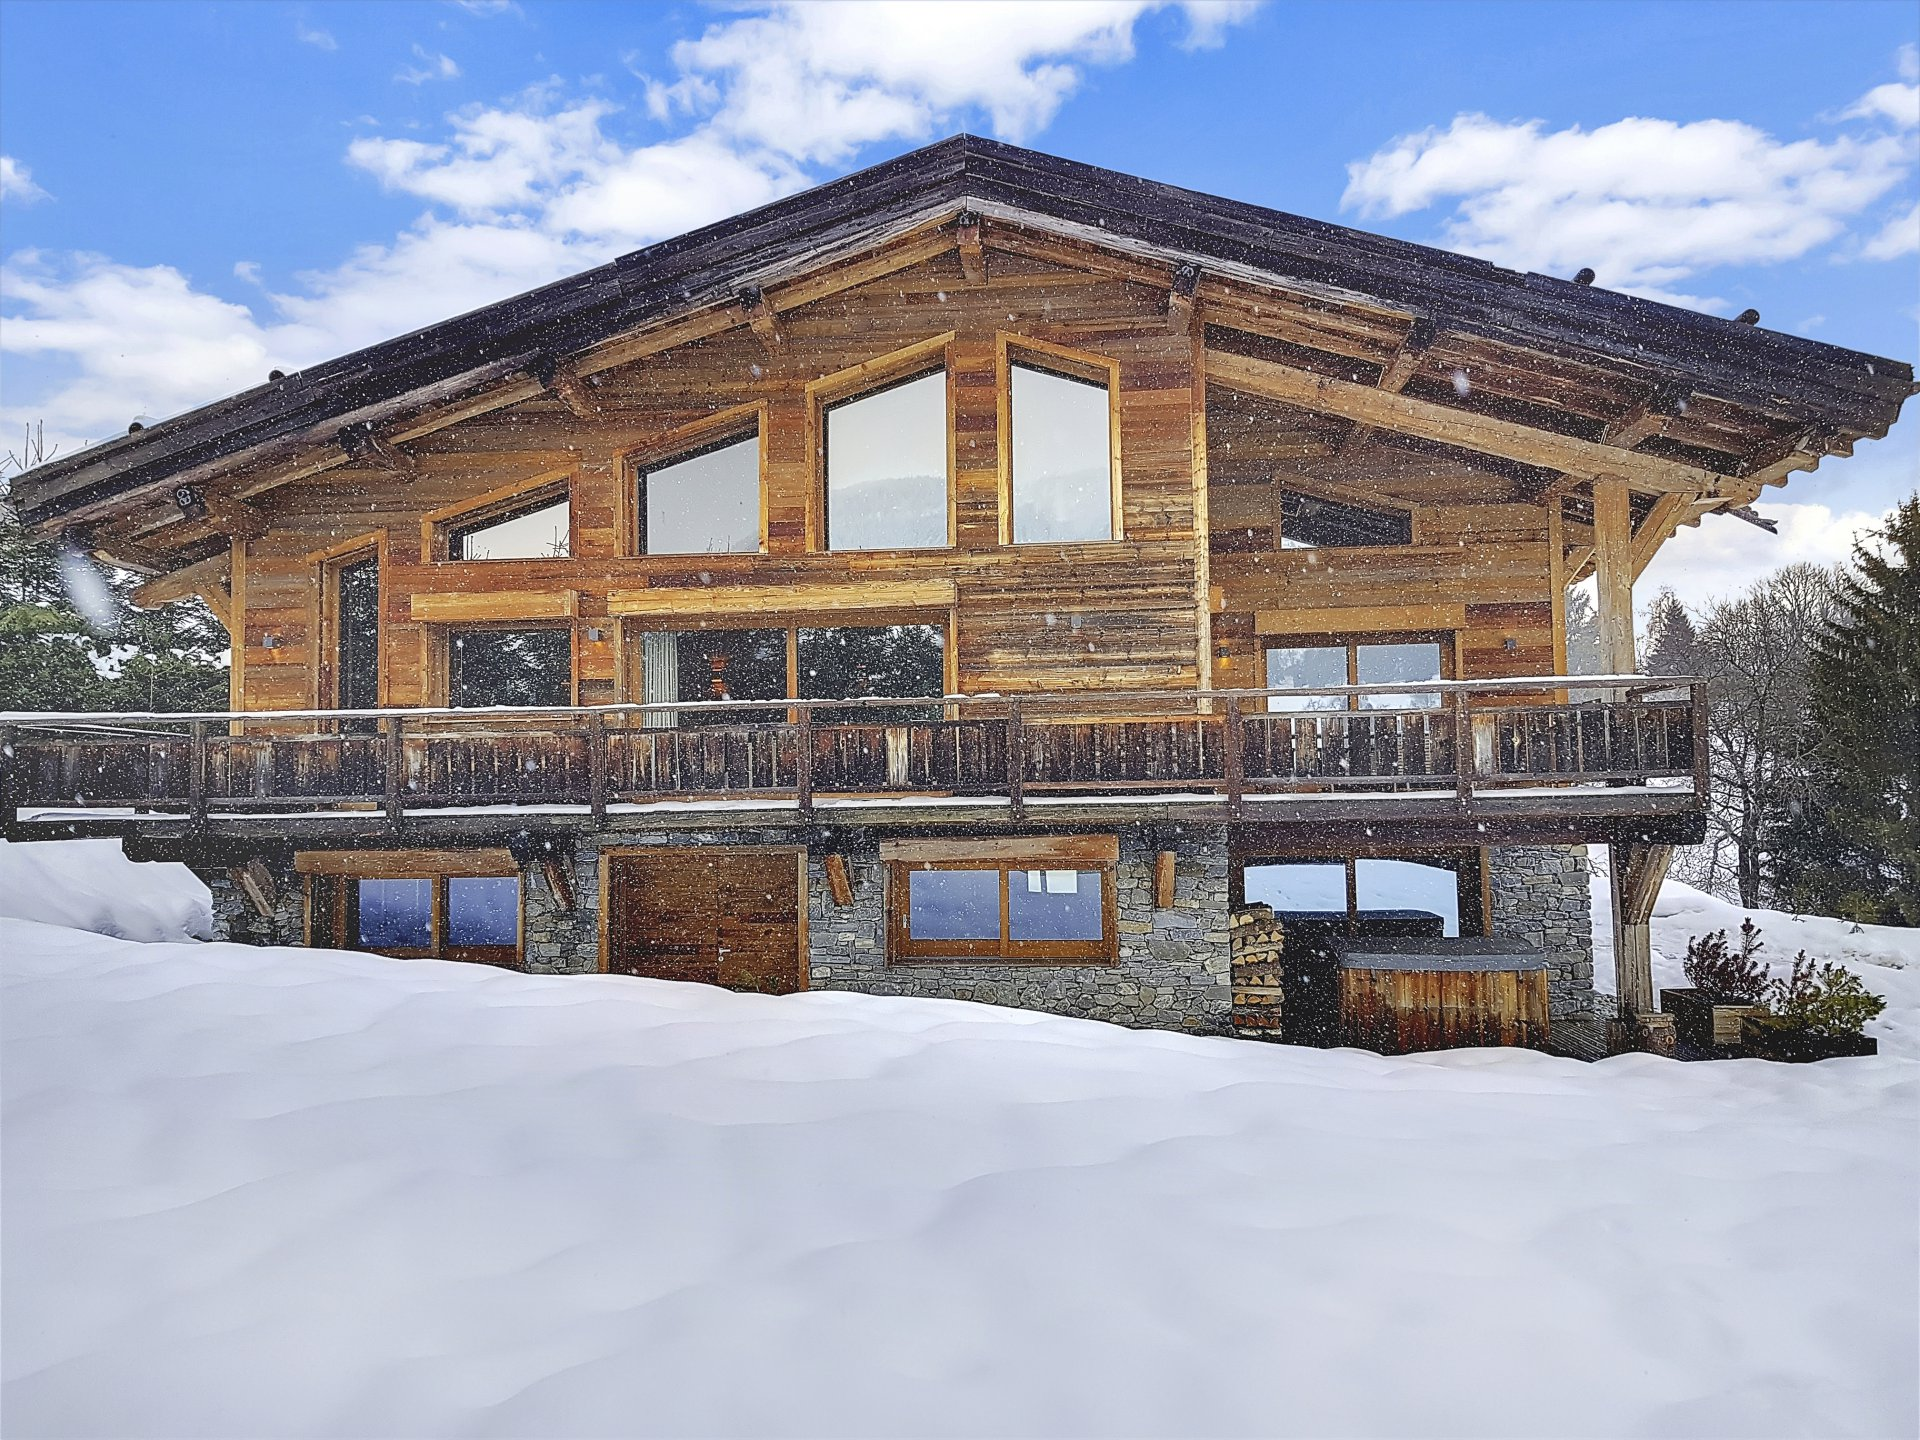 Office Tourisme Megeve Ad Seasonal Rental Chalet Megève Demi Quartier 74120 Ref L0091mg